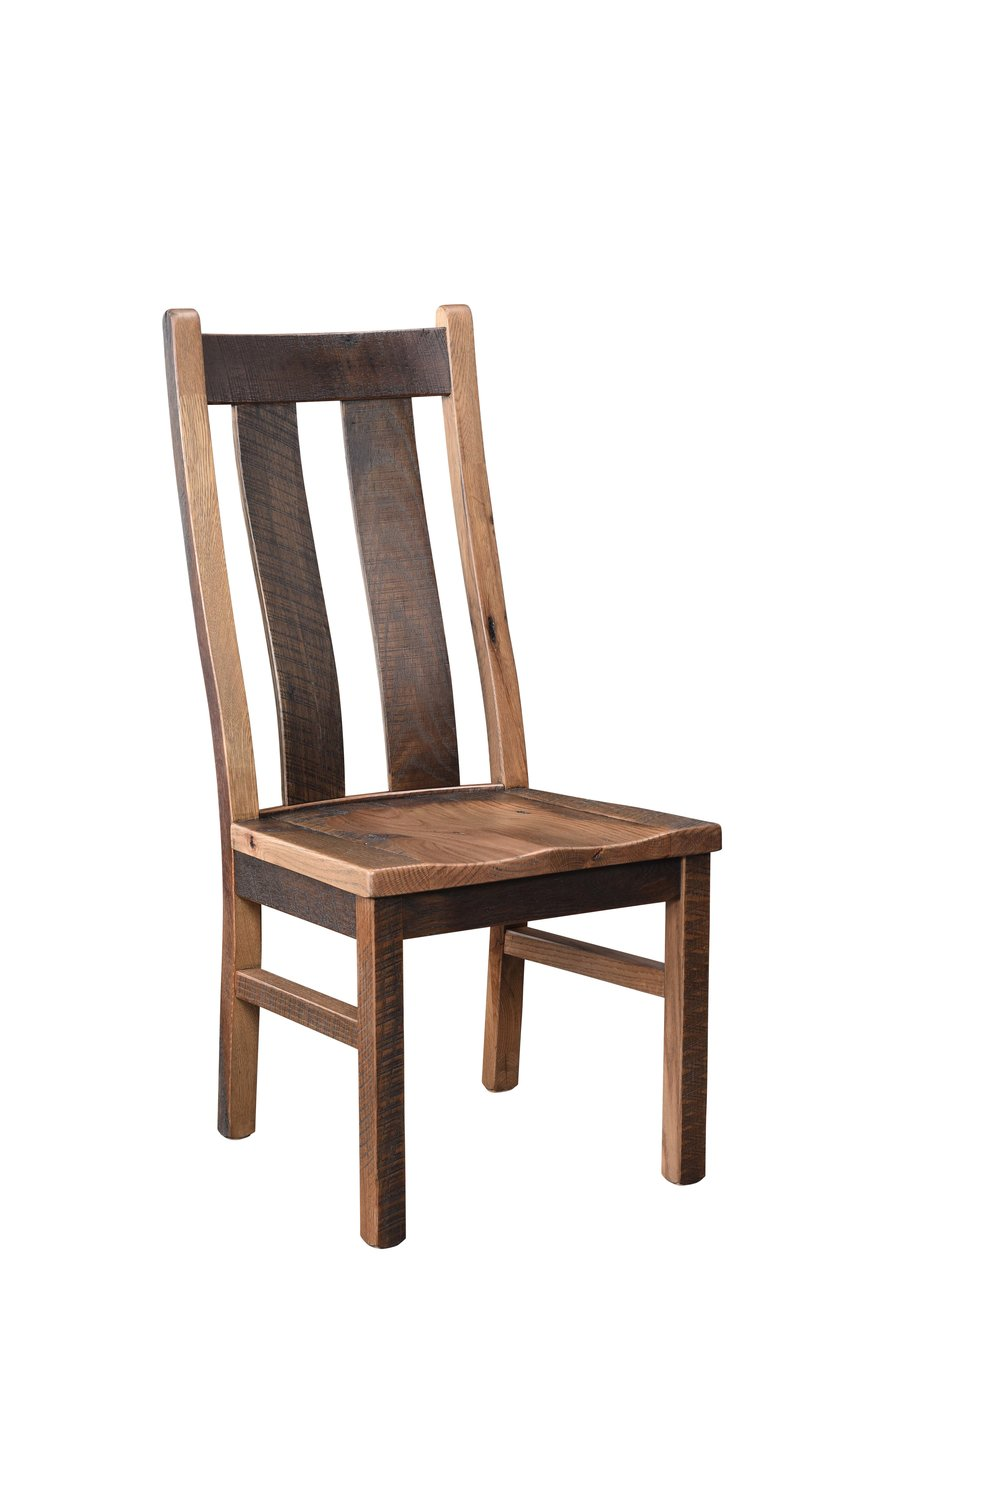 237-BSC Bristol Side Chair - Sept2017Cat-p67 Top.jpg